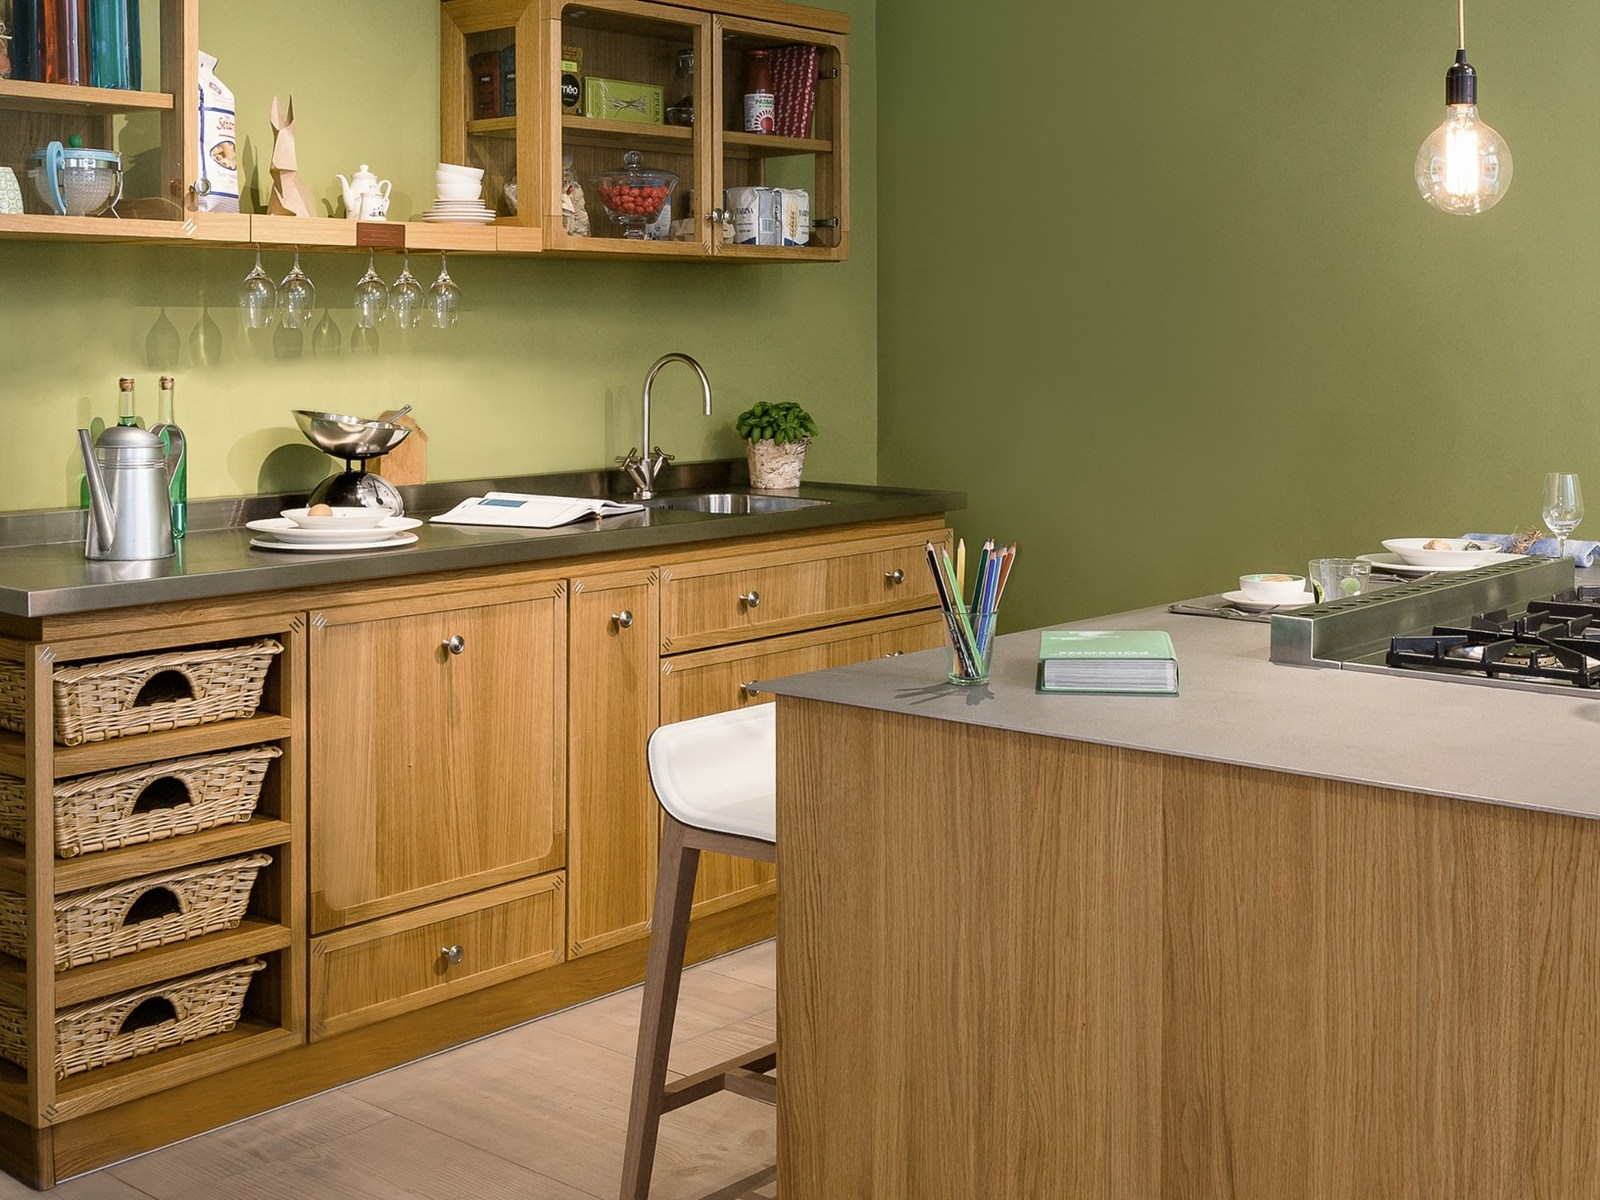 View In Gallery Mini Island Idea For Small Urban Kitchens By